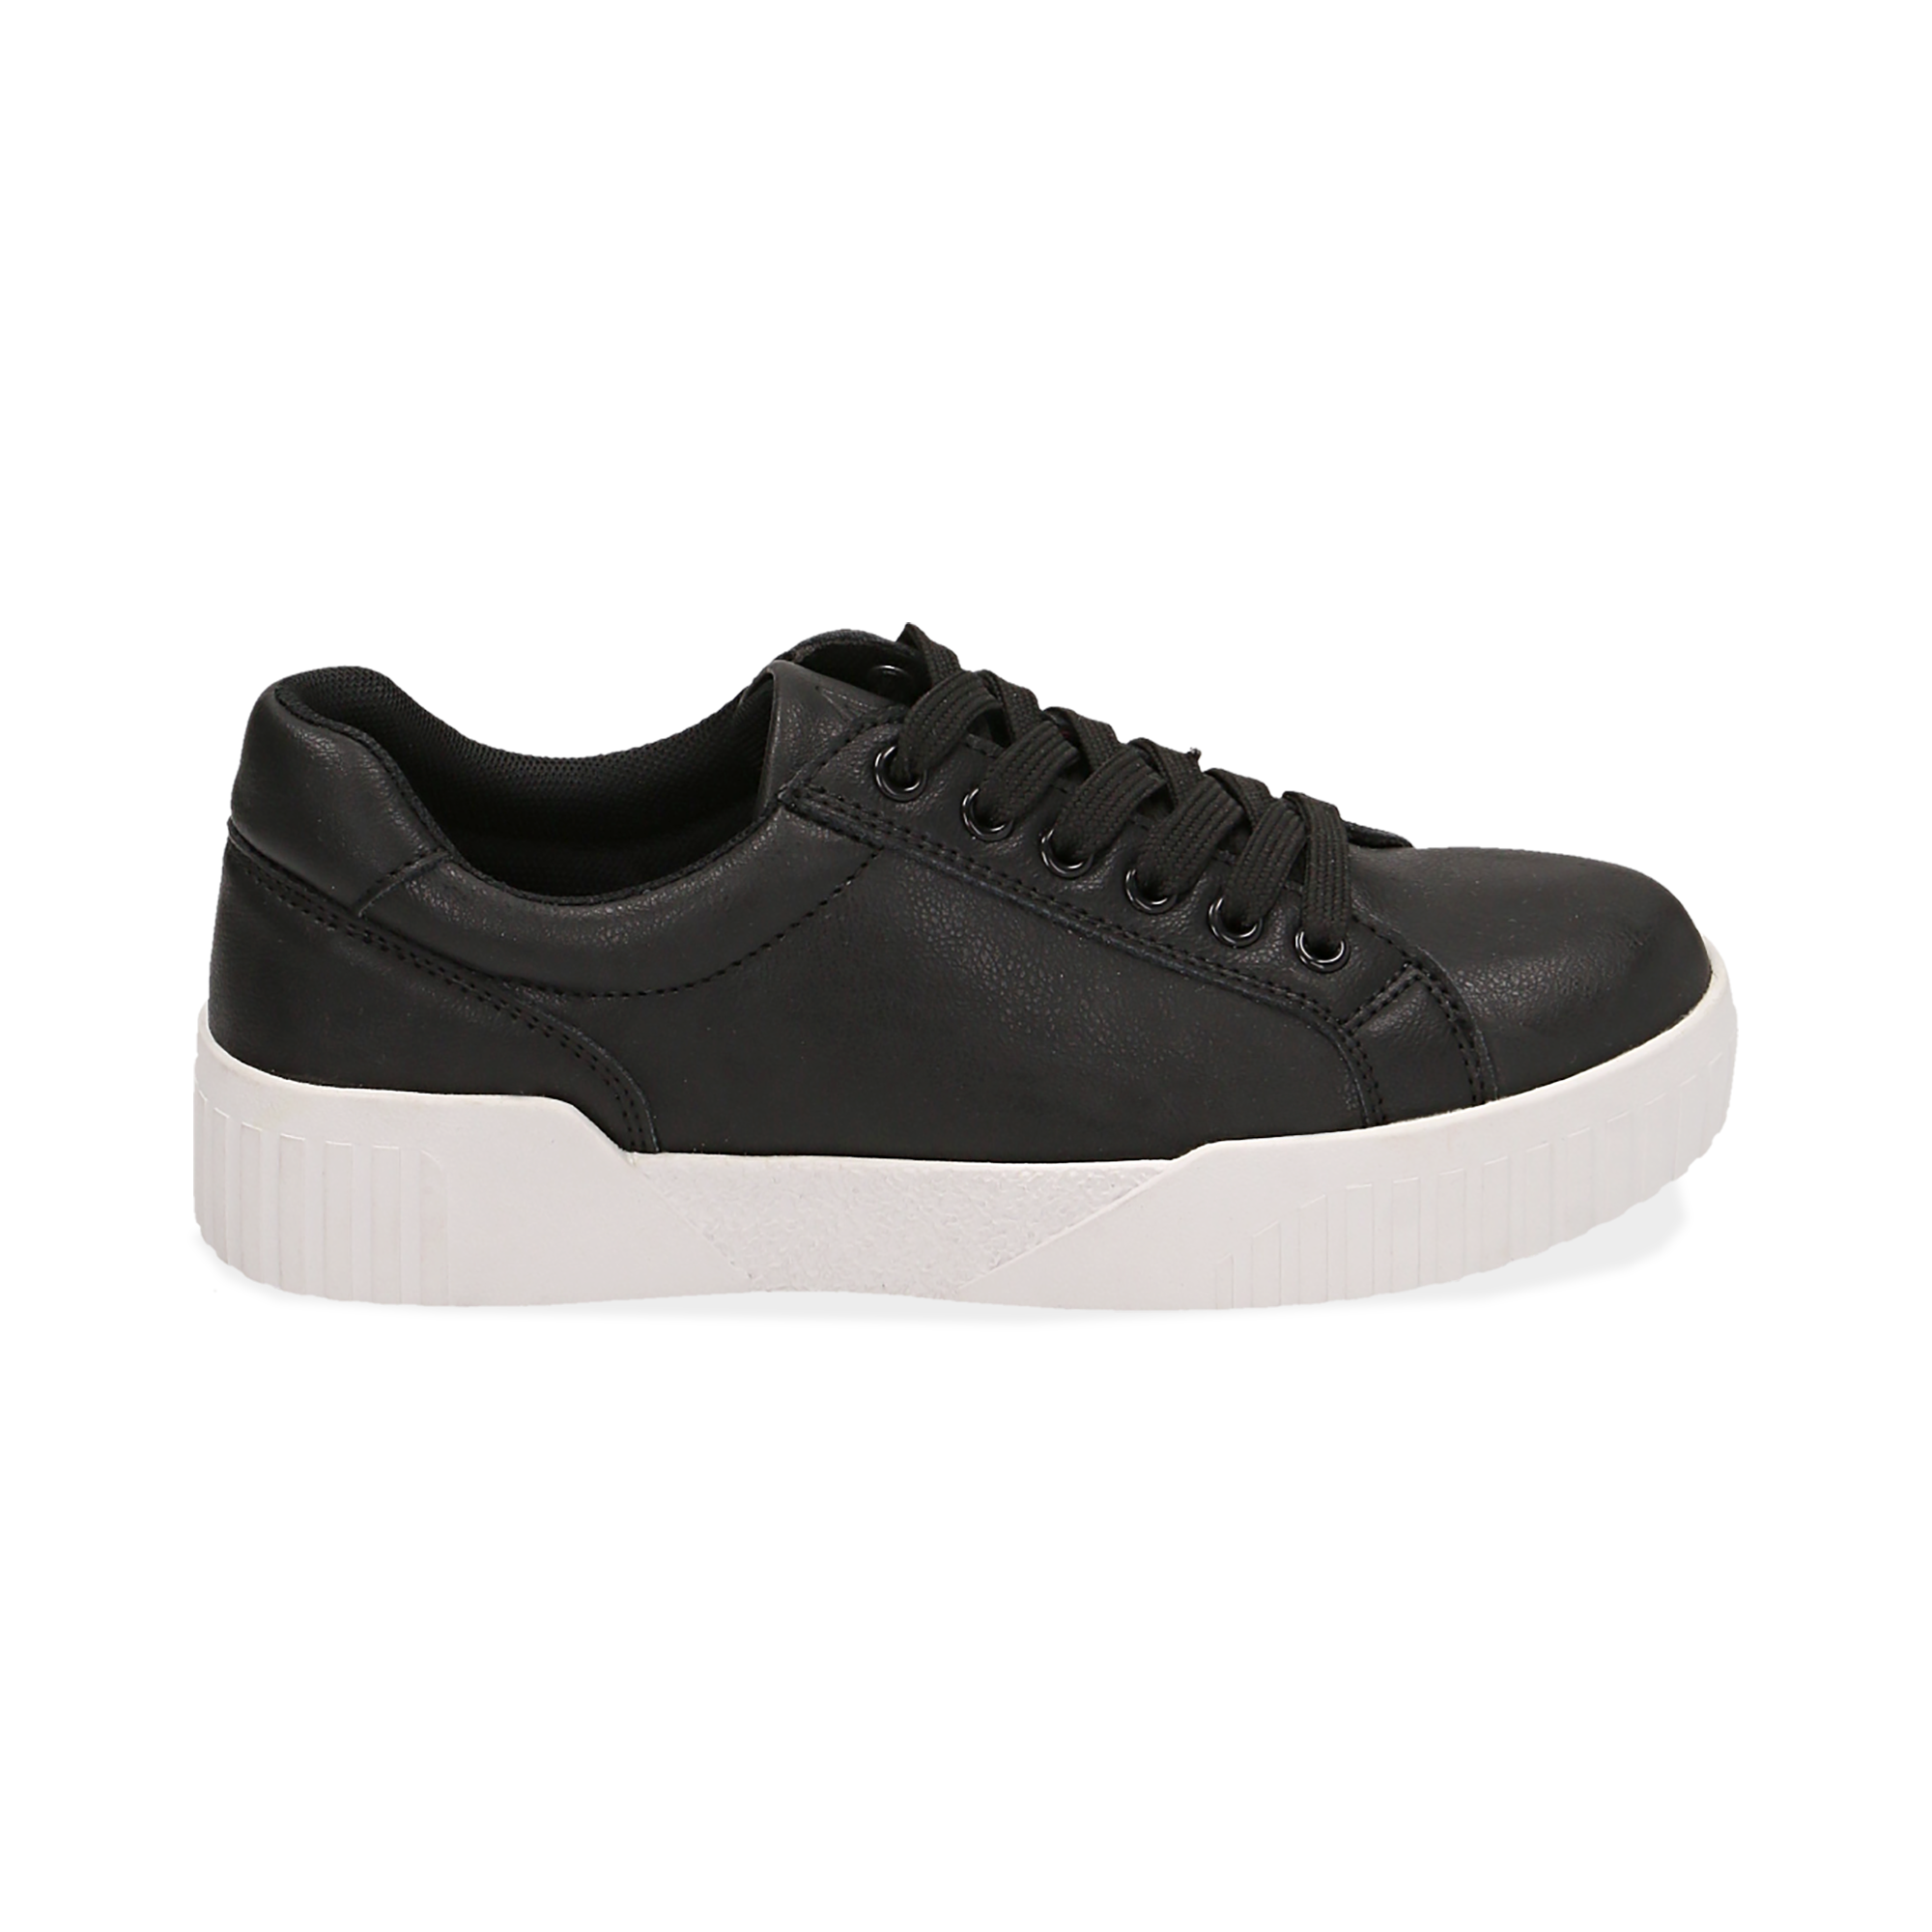 Sneakers en eco-piel color negro